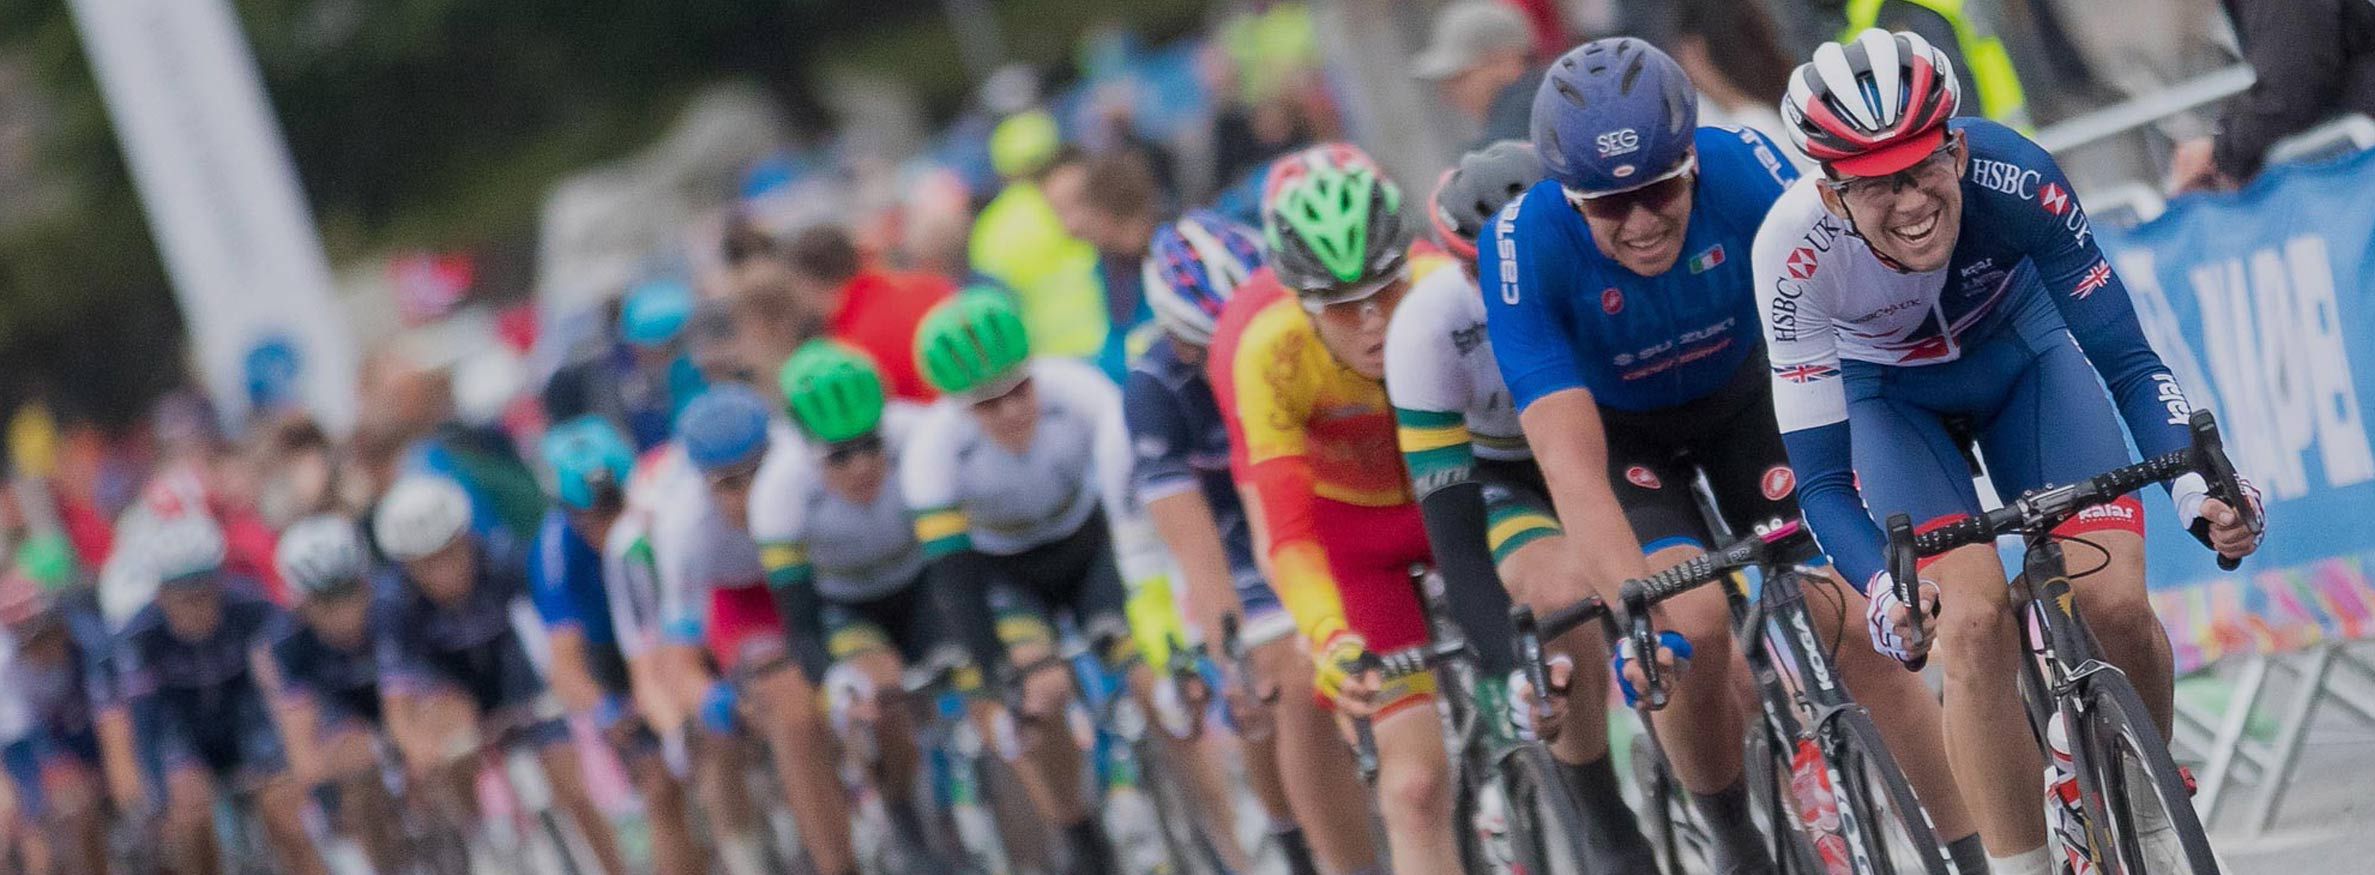 Cyclists taking part in the UCI Road World Championships.